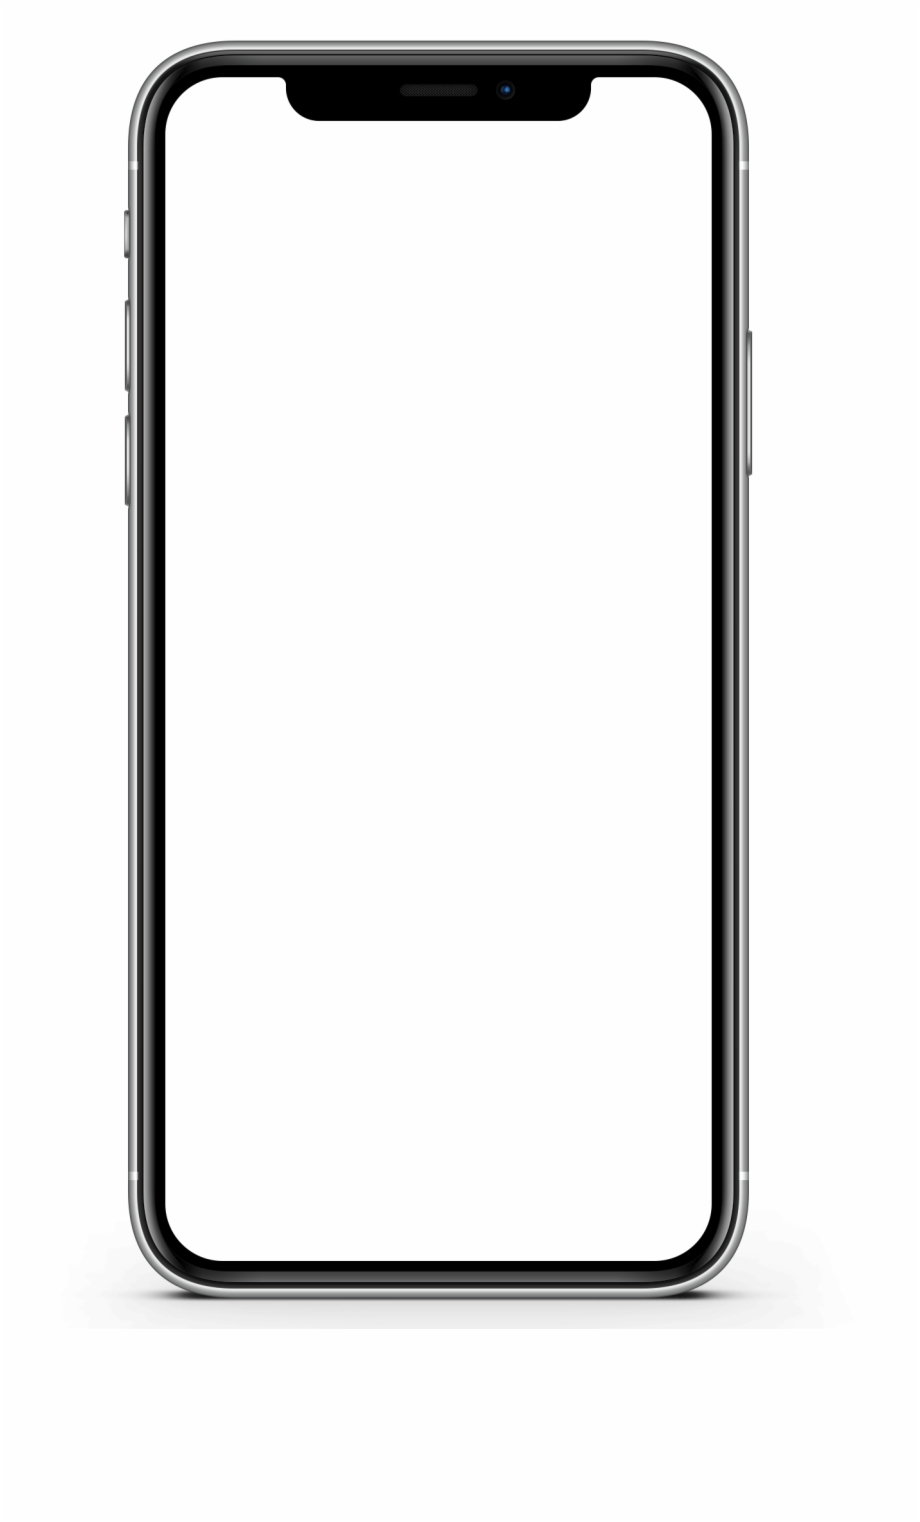 Iphone Xs Mockup Png, Transparent Png Download For Free #4380469.